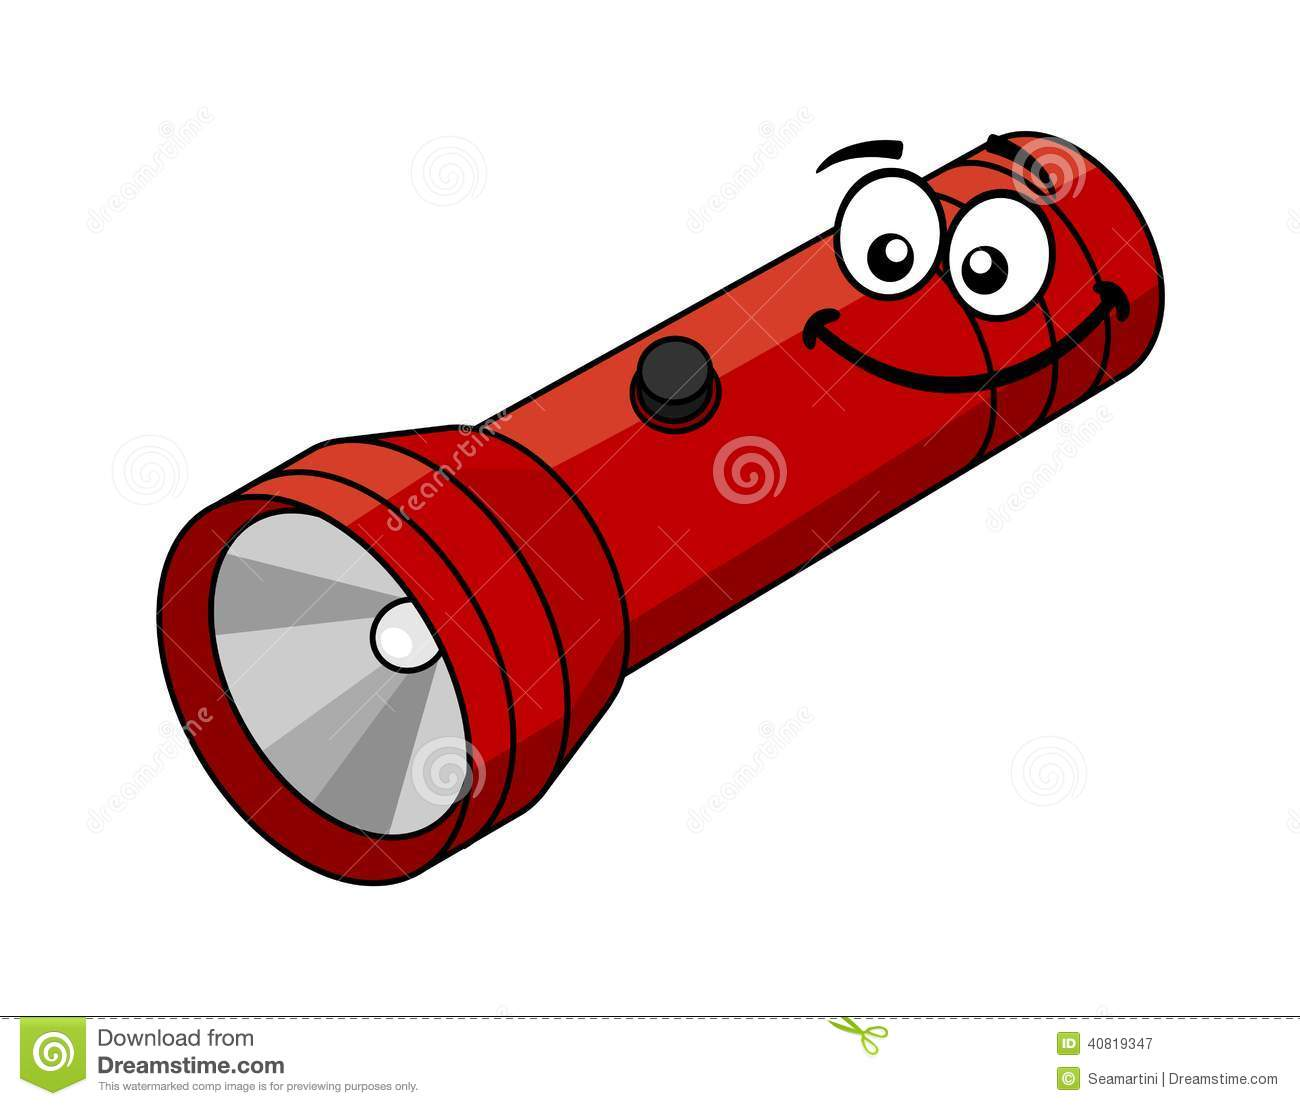 Red flashlight in cartoon style isolated on white background.